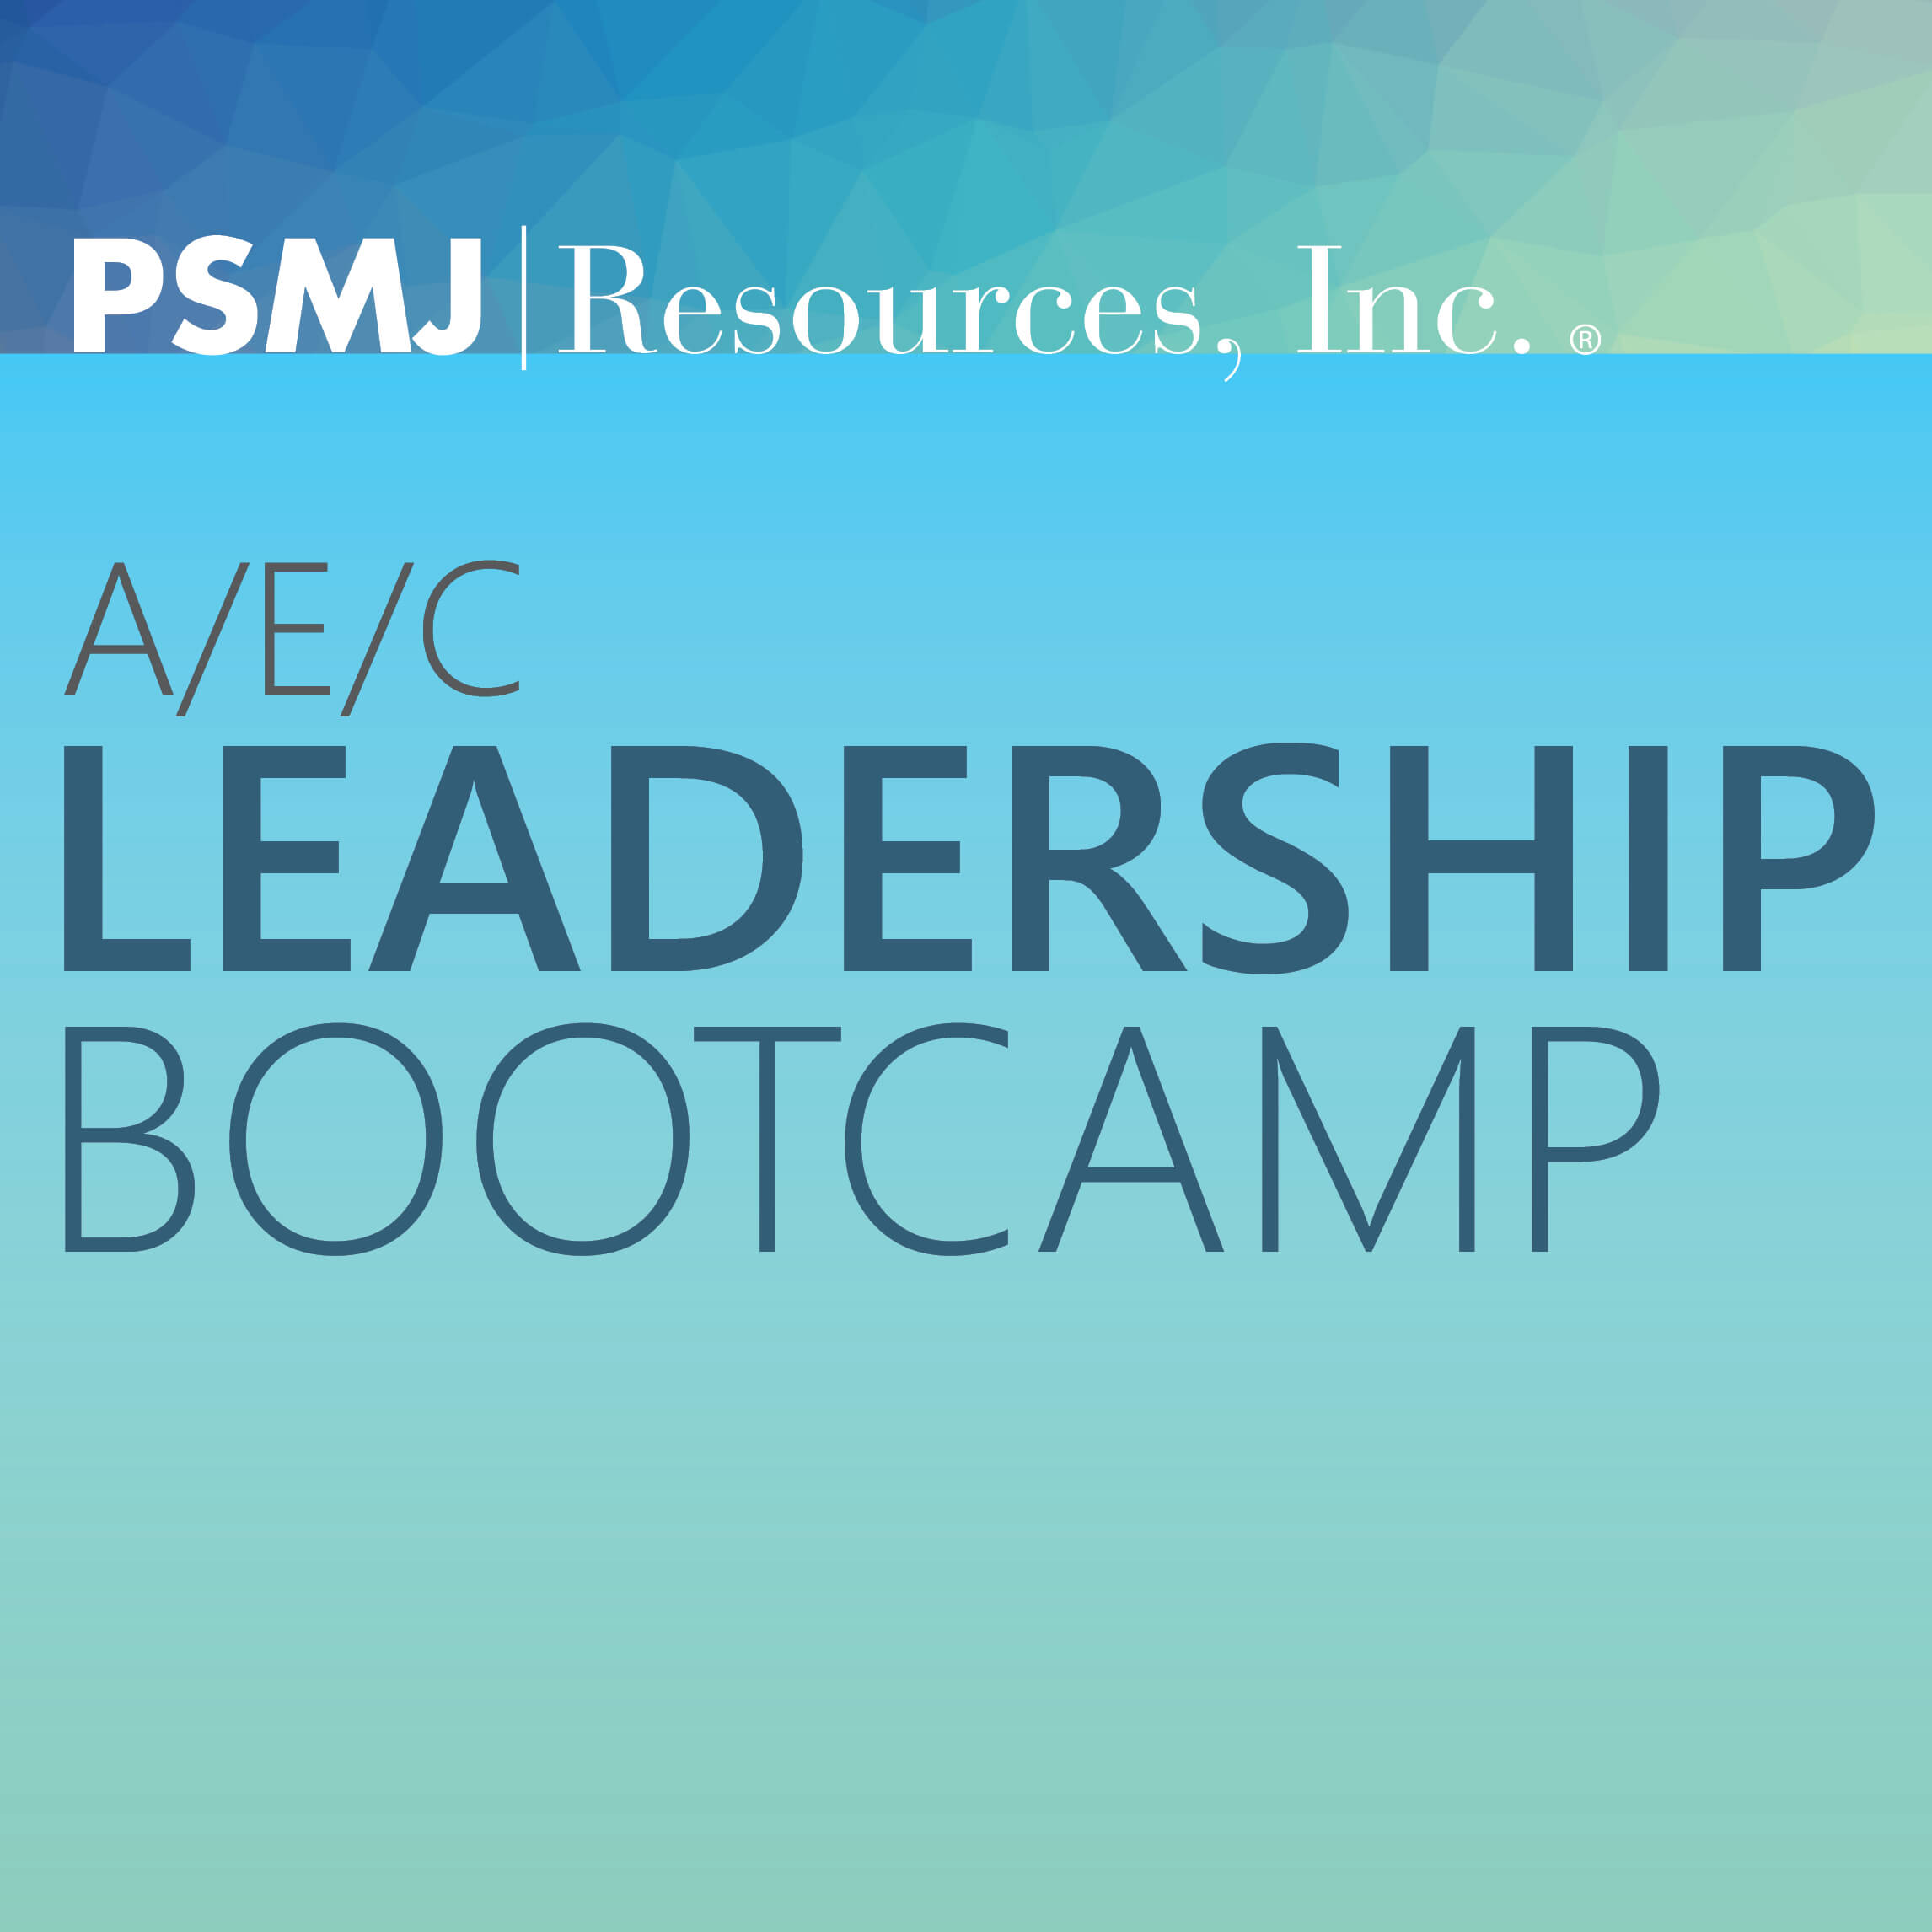 A/E/C Leadership Bootcamp